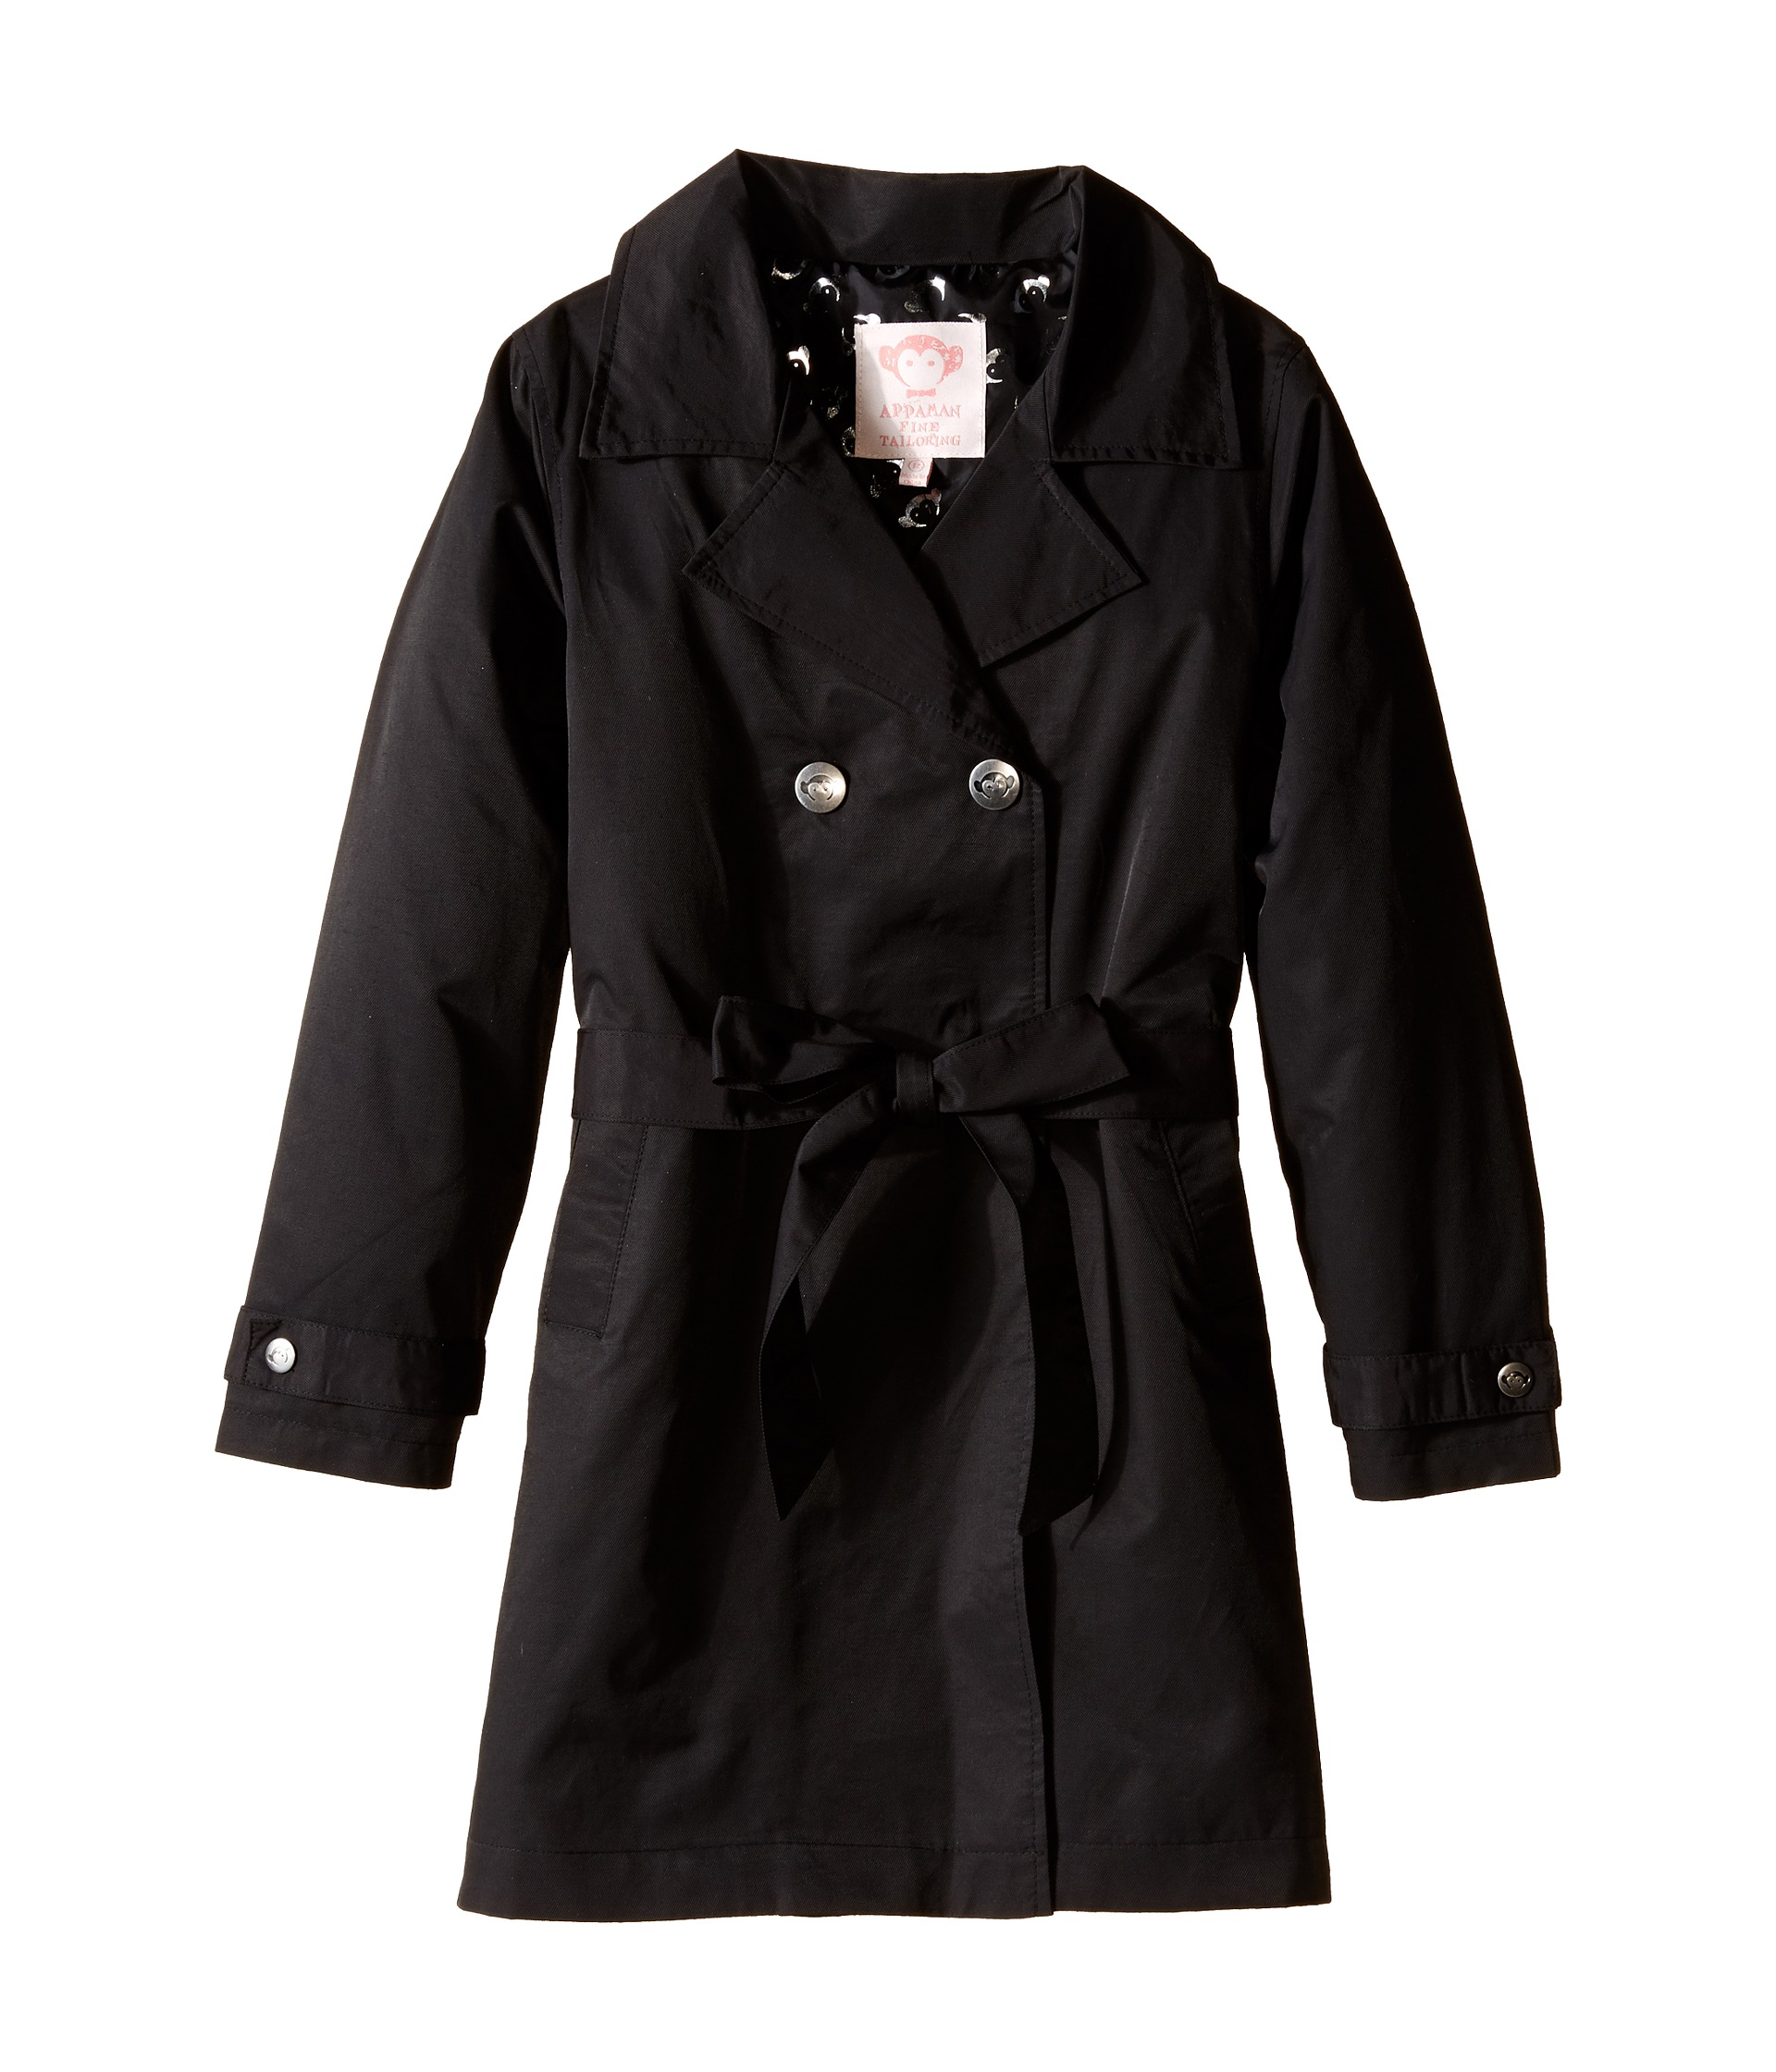 Shop for black trench coat kids online at Target. Free shipping on purchases over $35 and save 5% every day with your Target REDcard.